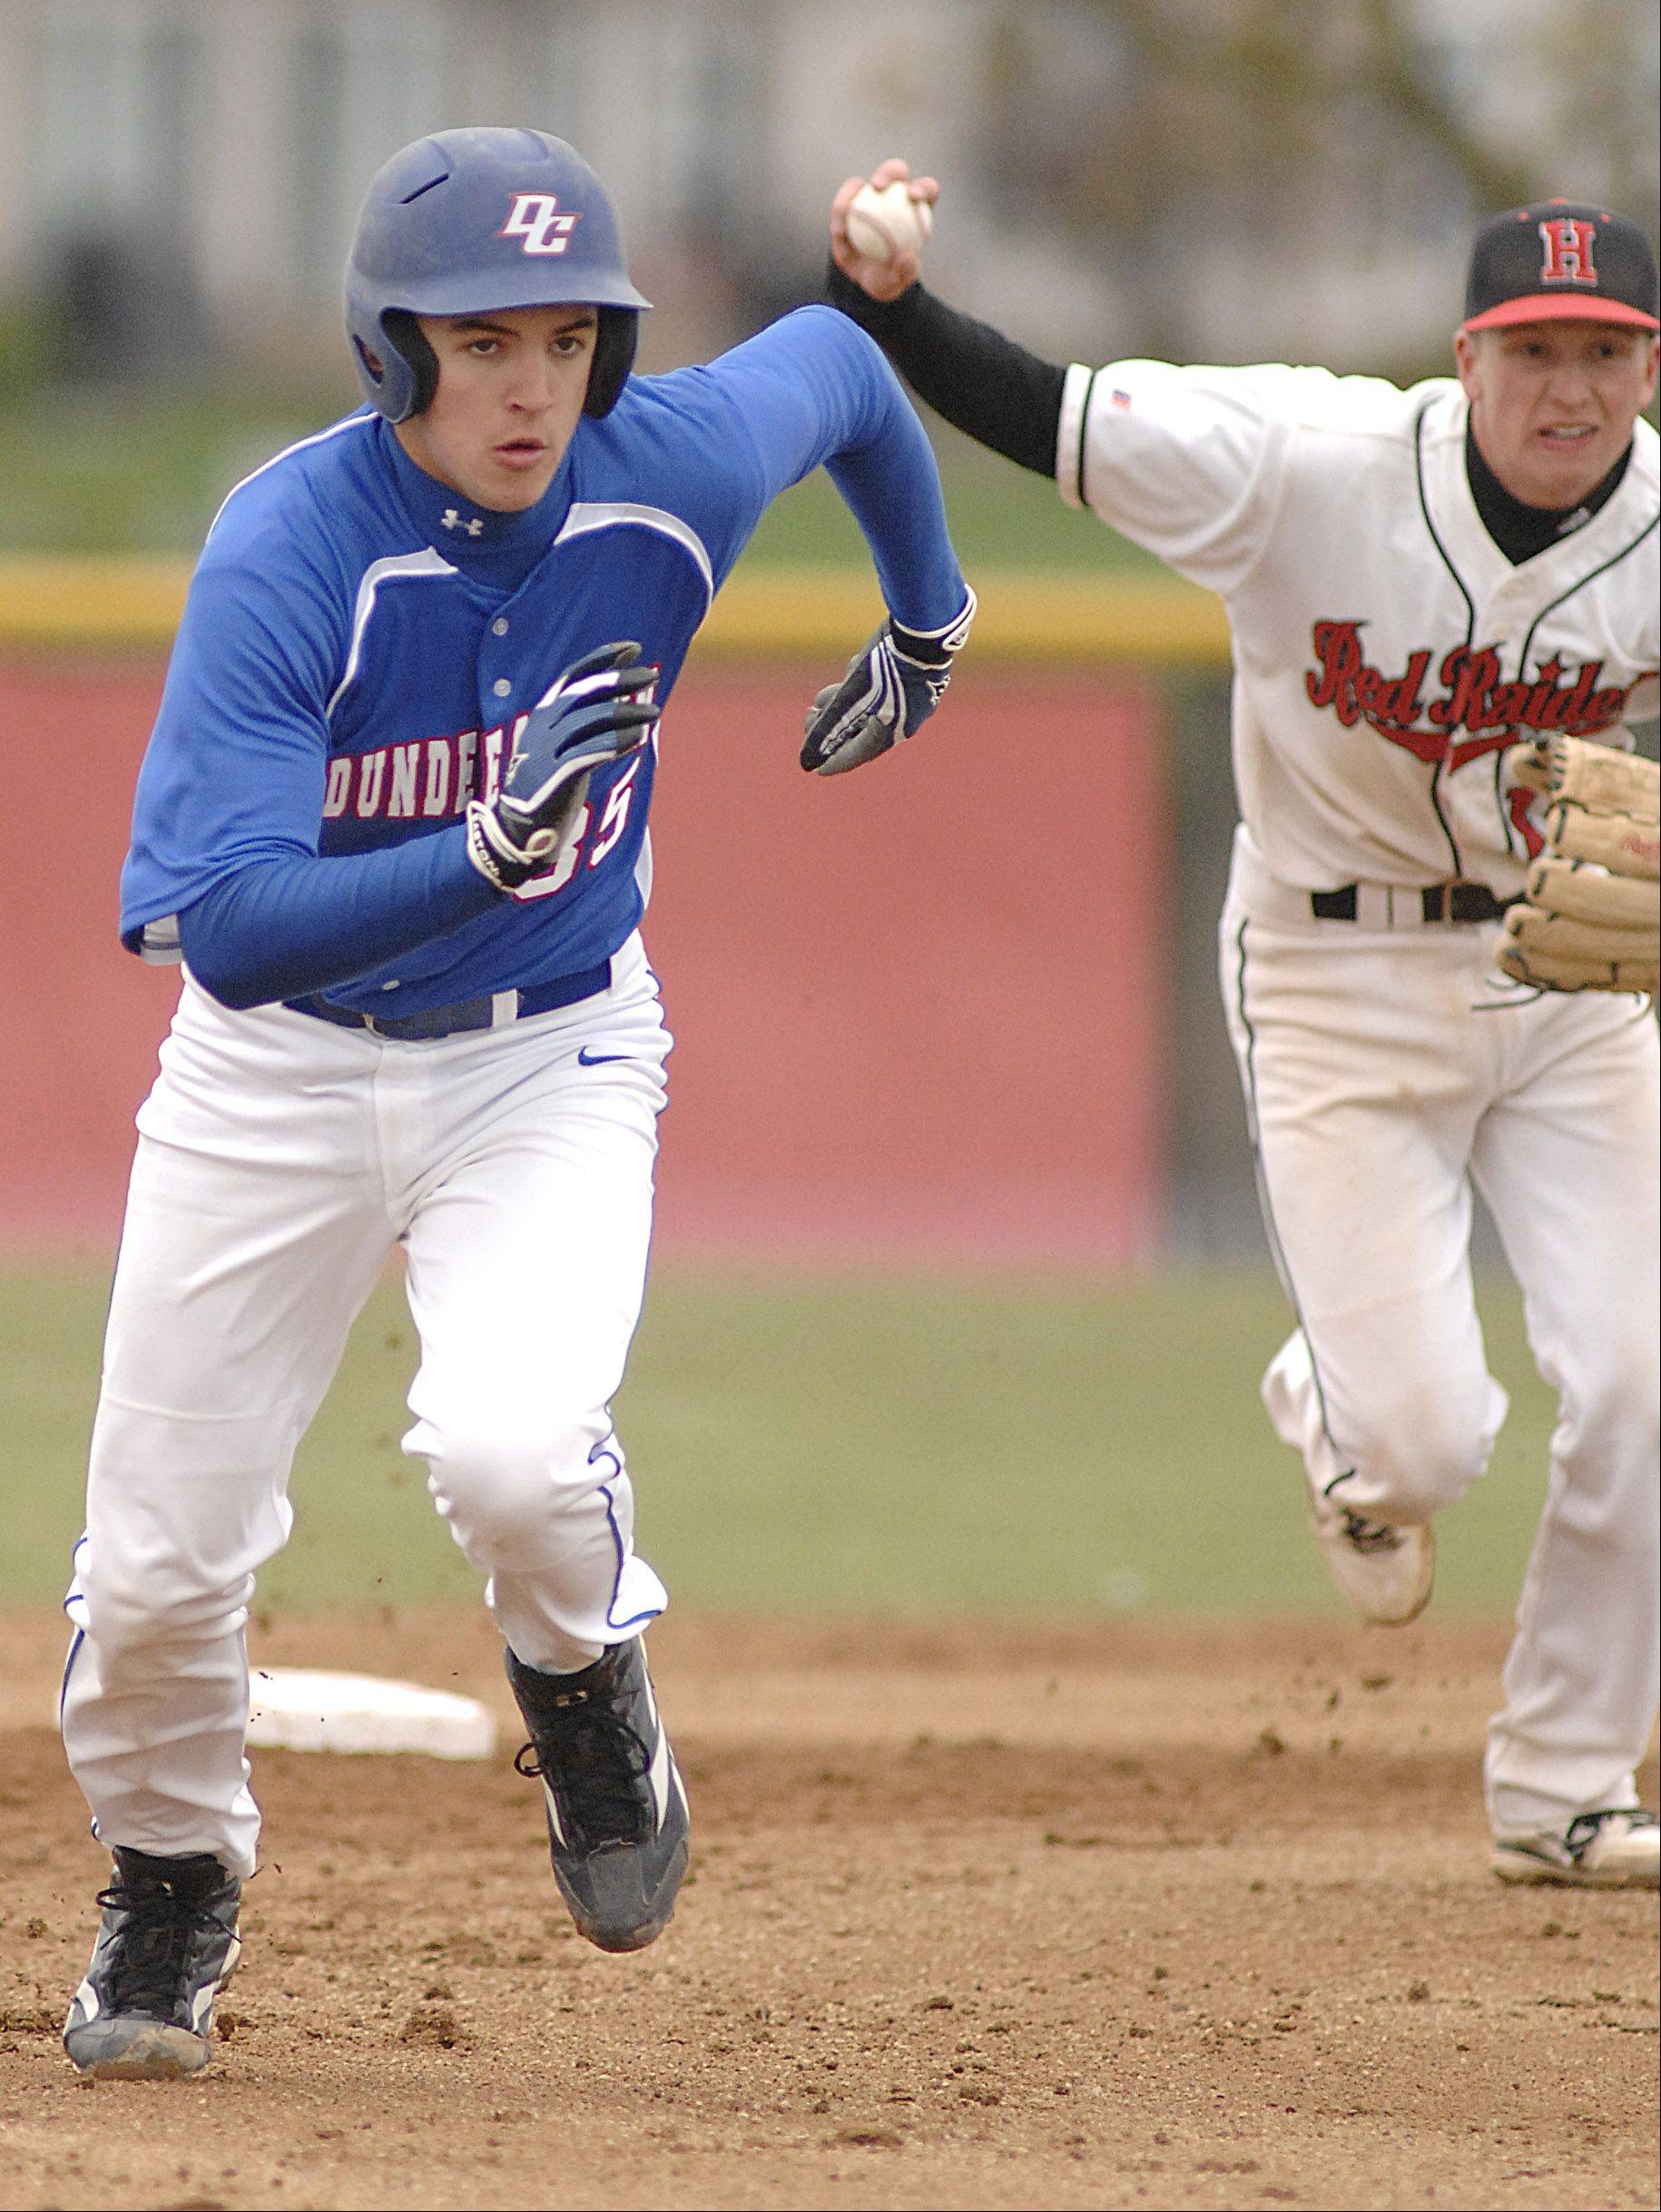 Dundee-Crown's Kyle Bernhard is chased down by Huntley's Jordan Chuipek as he heads for third base Saturday.